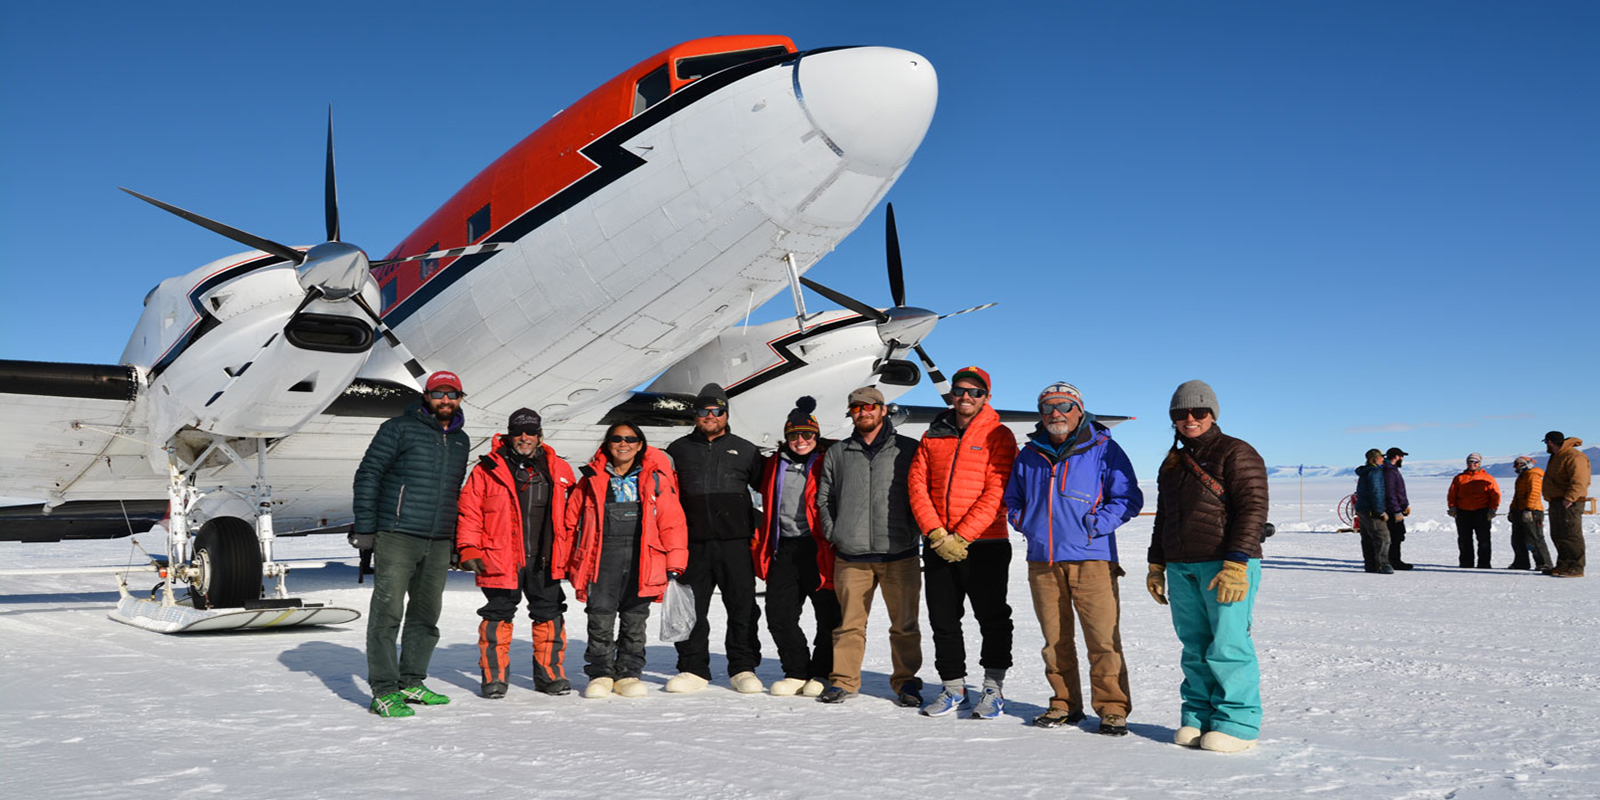 group of scientists stand in front of the airplane that dropped them off on the snow-covered runway in Antarctica